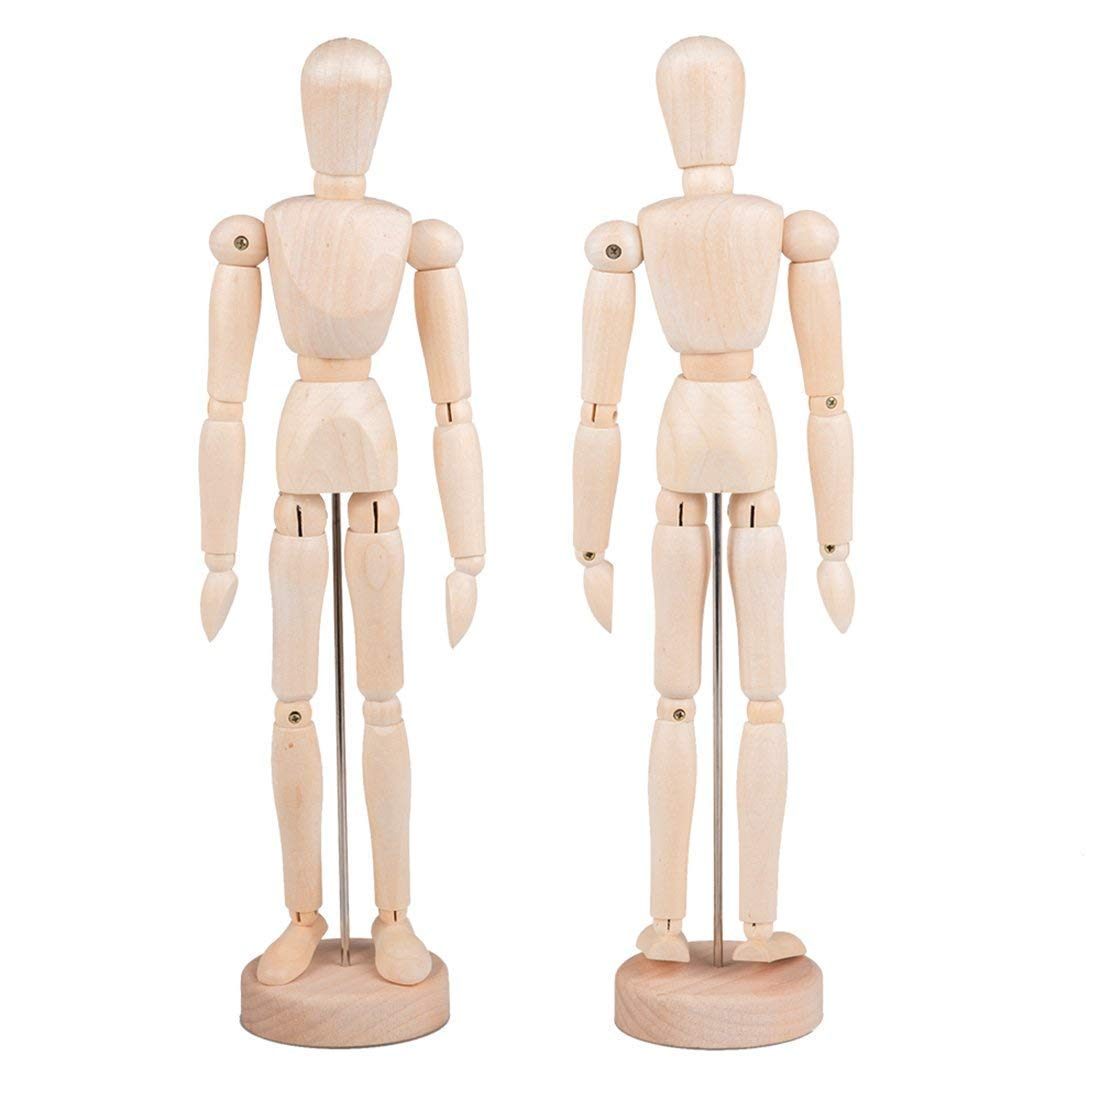 Alikeke 2 Pack 12 Inches Tall Wooden Mannequin Artist Manikin with Stand - Great for Drawing or Desktop Decor (Men and Women / Dad and Mom )